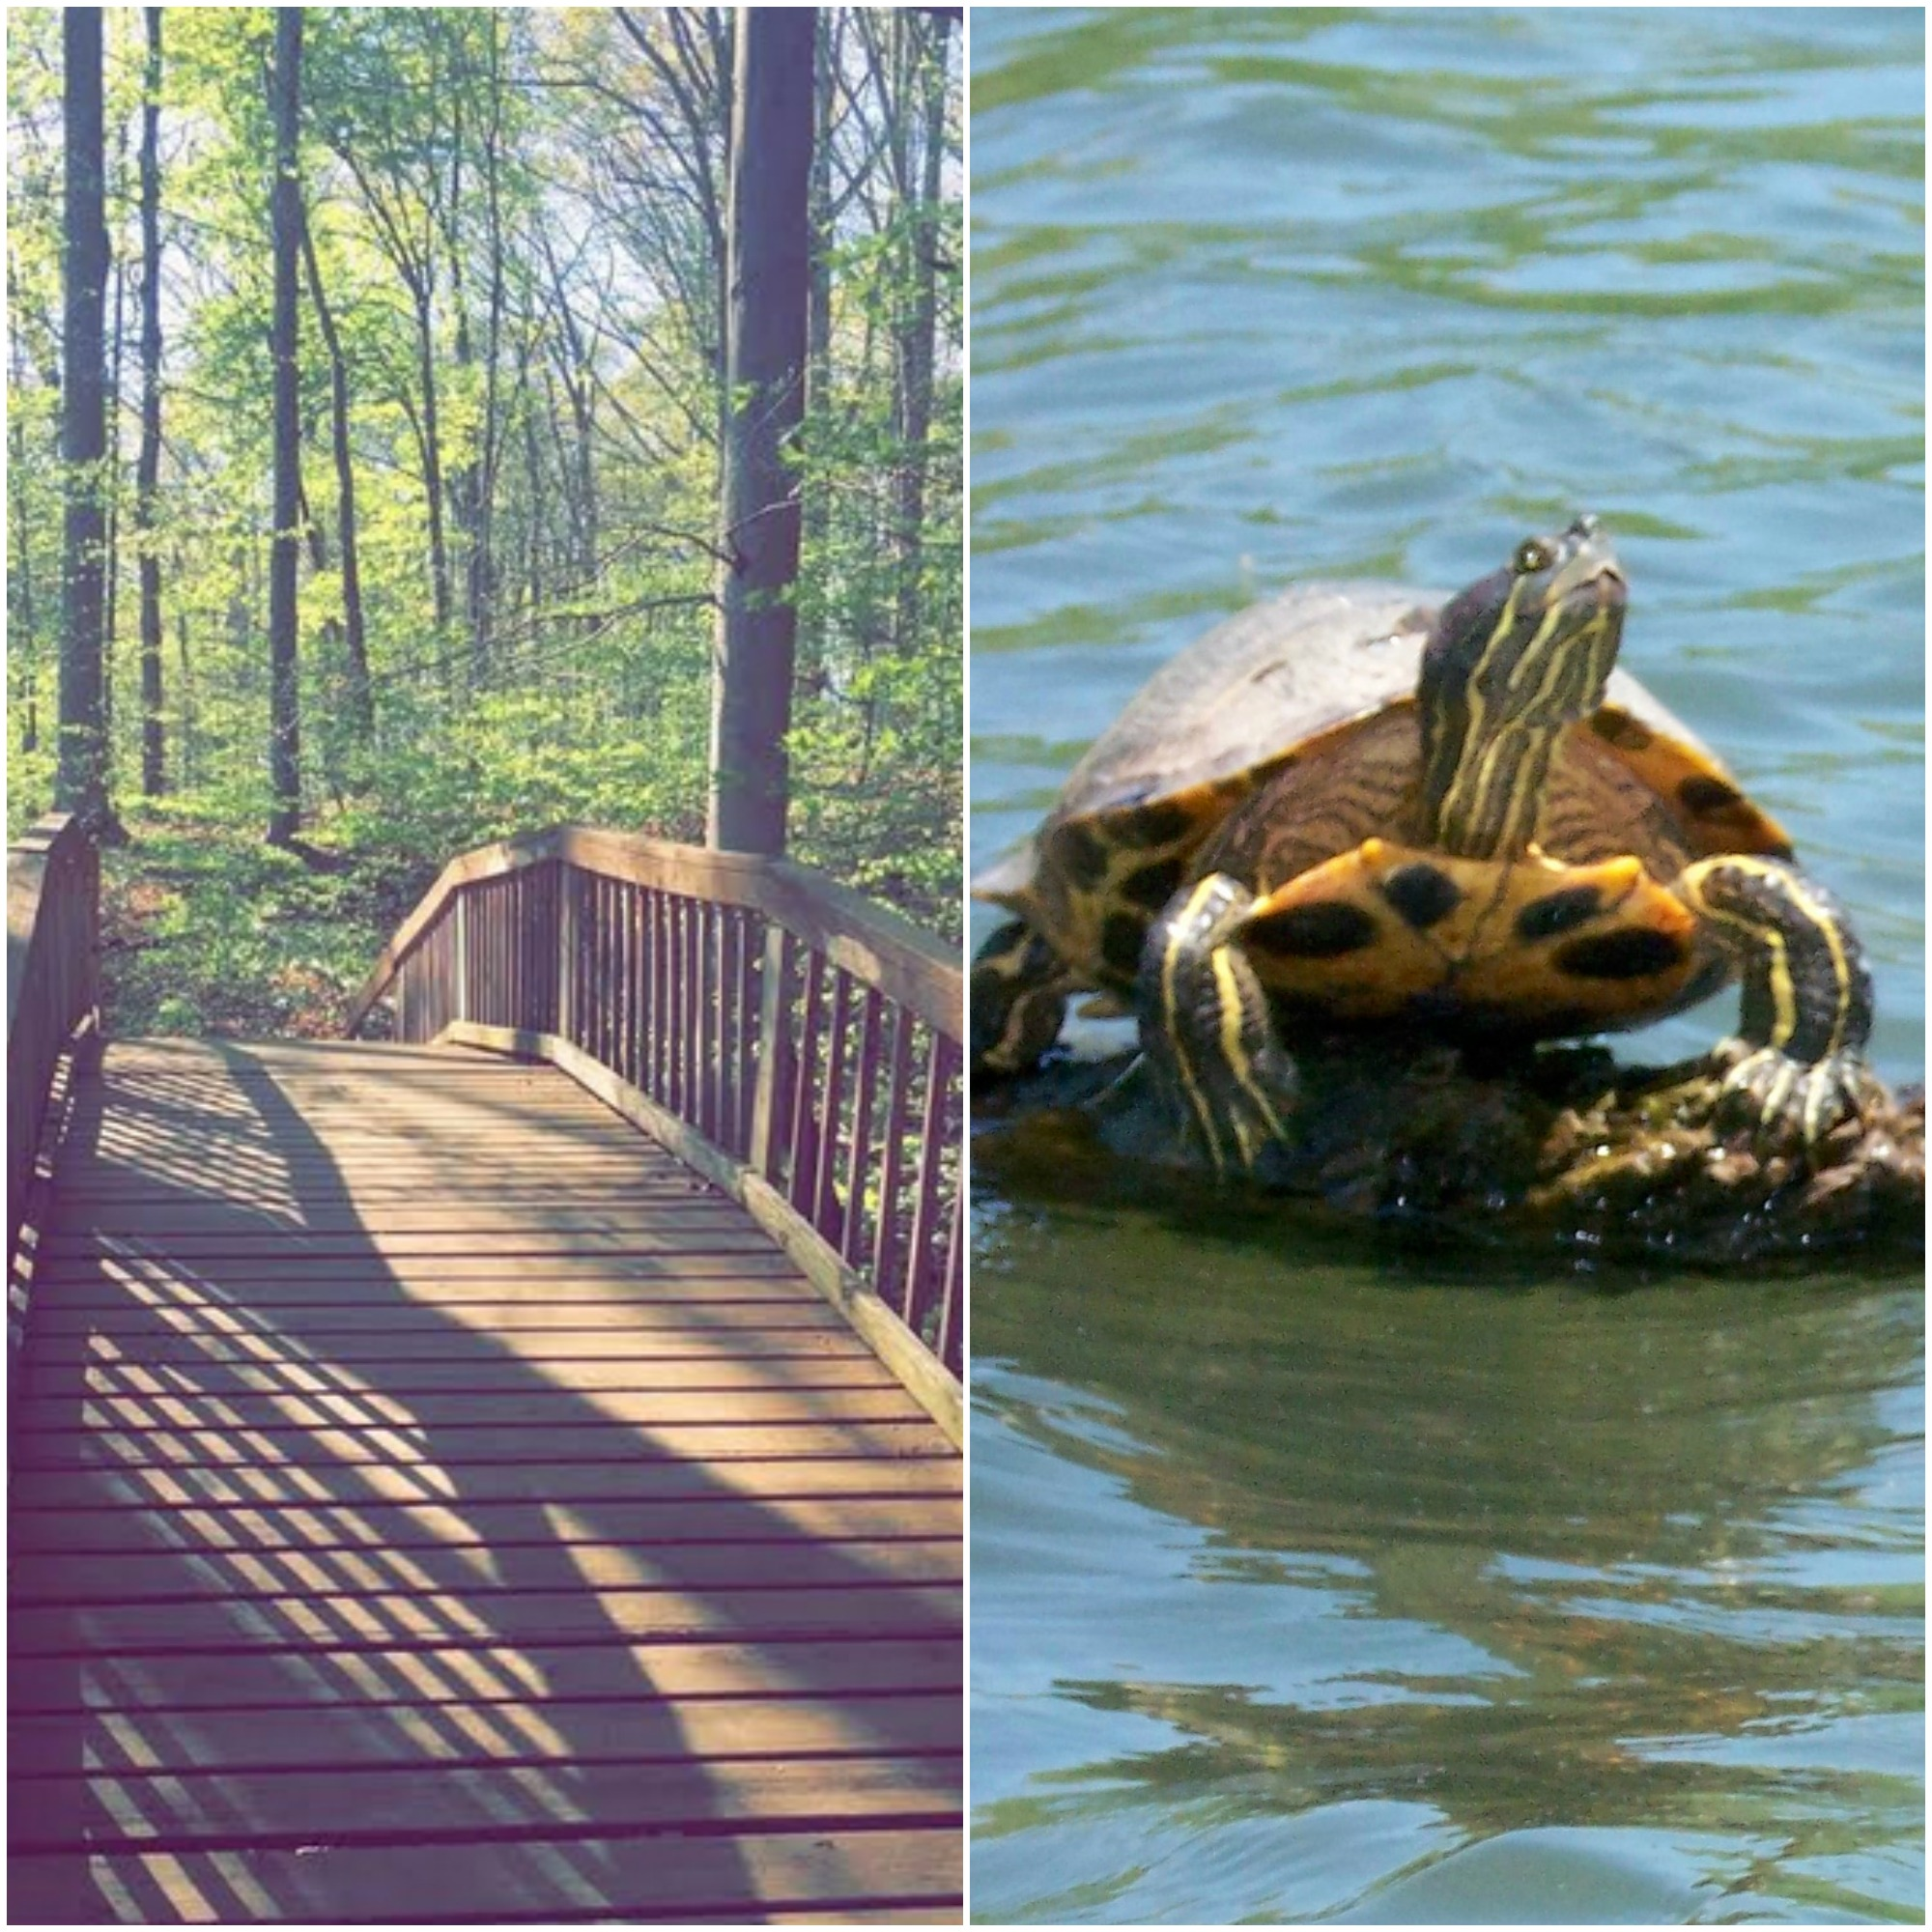 Lake Monroe and a turtle